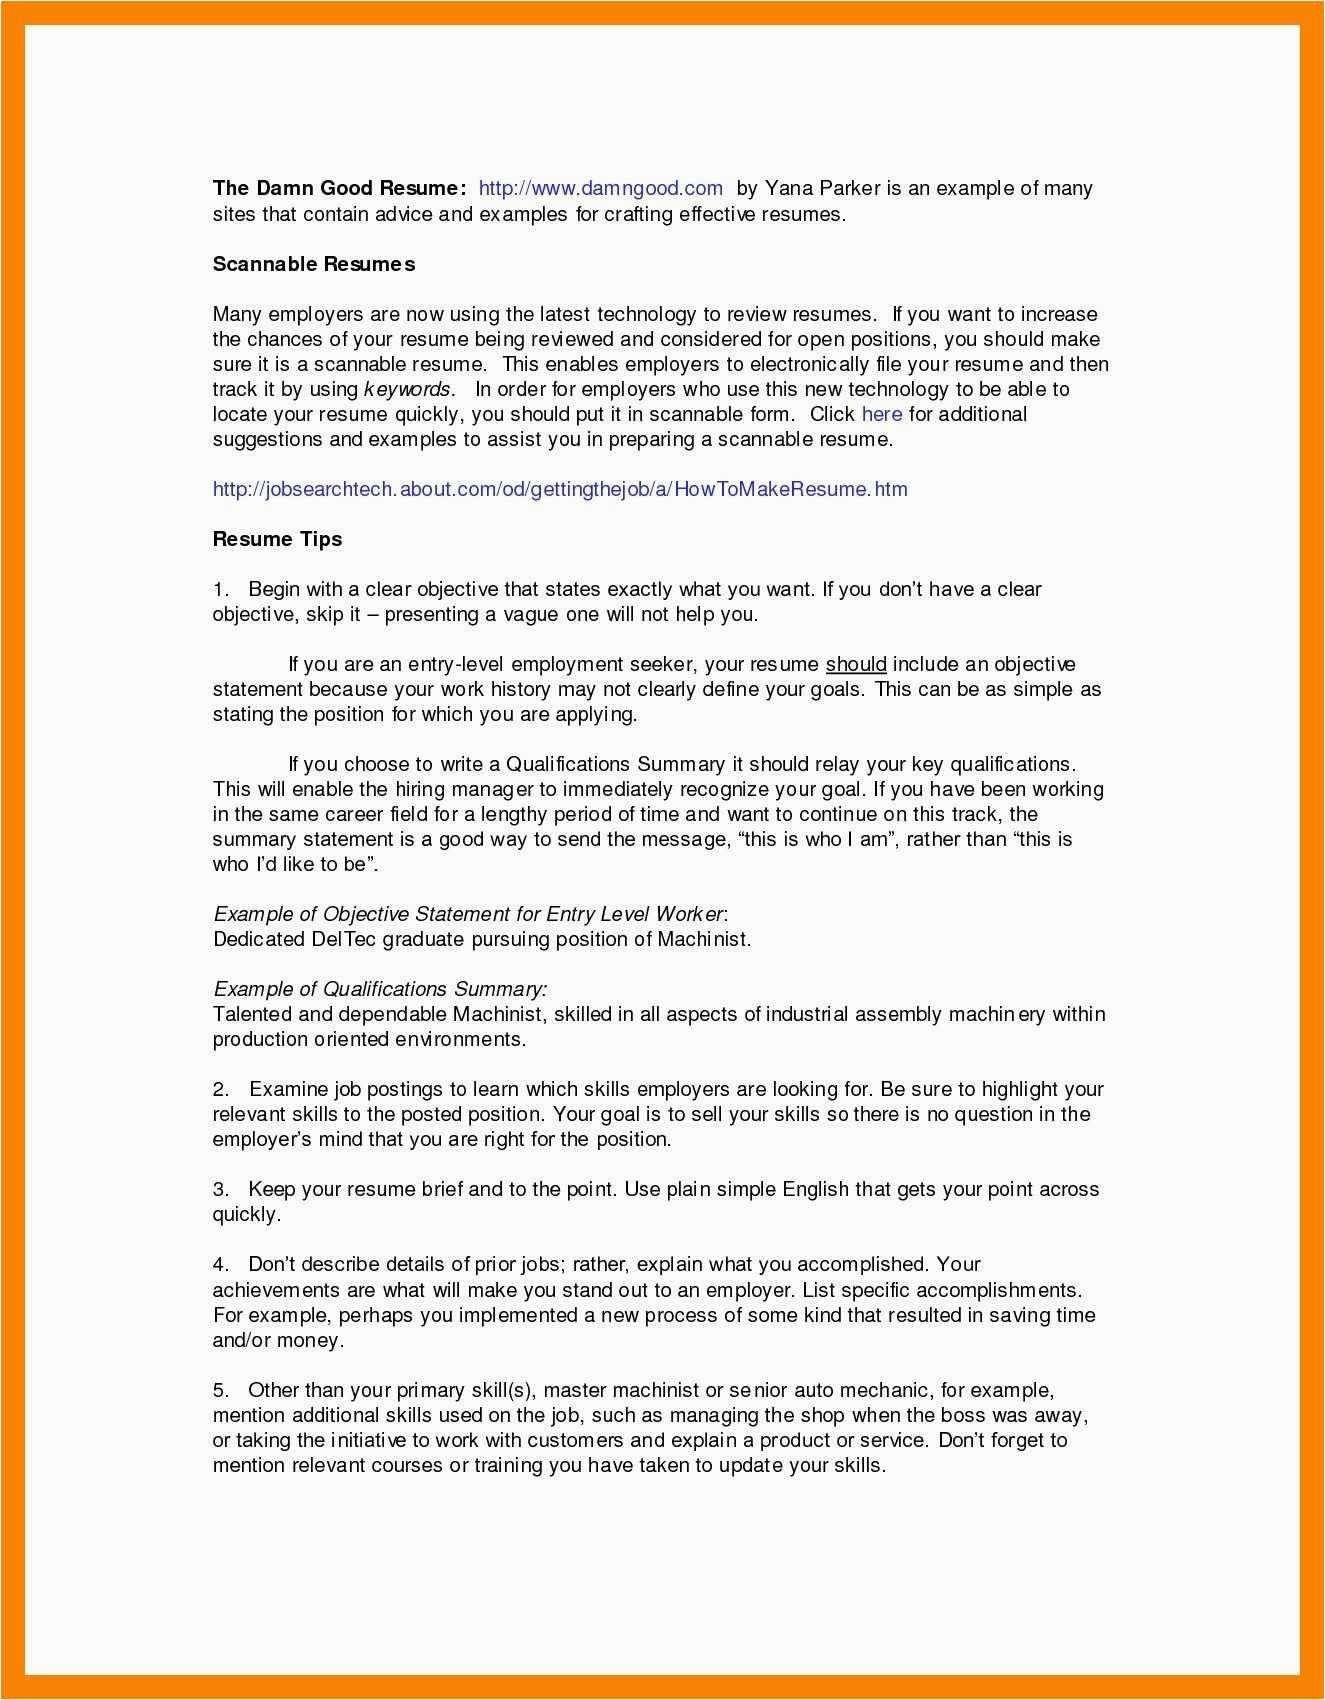 Email Template for Sending Resume - Send Resume Download Email Resume Cover Letter Fresh New Send Email